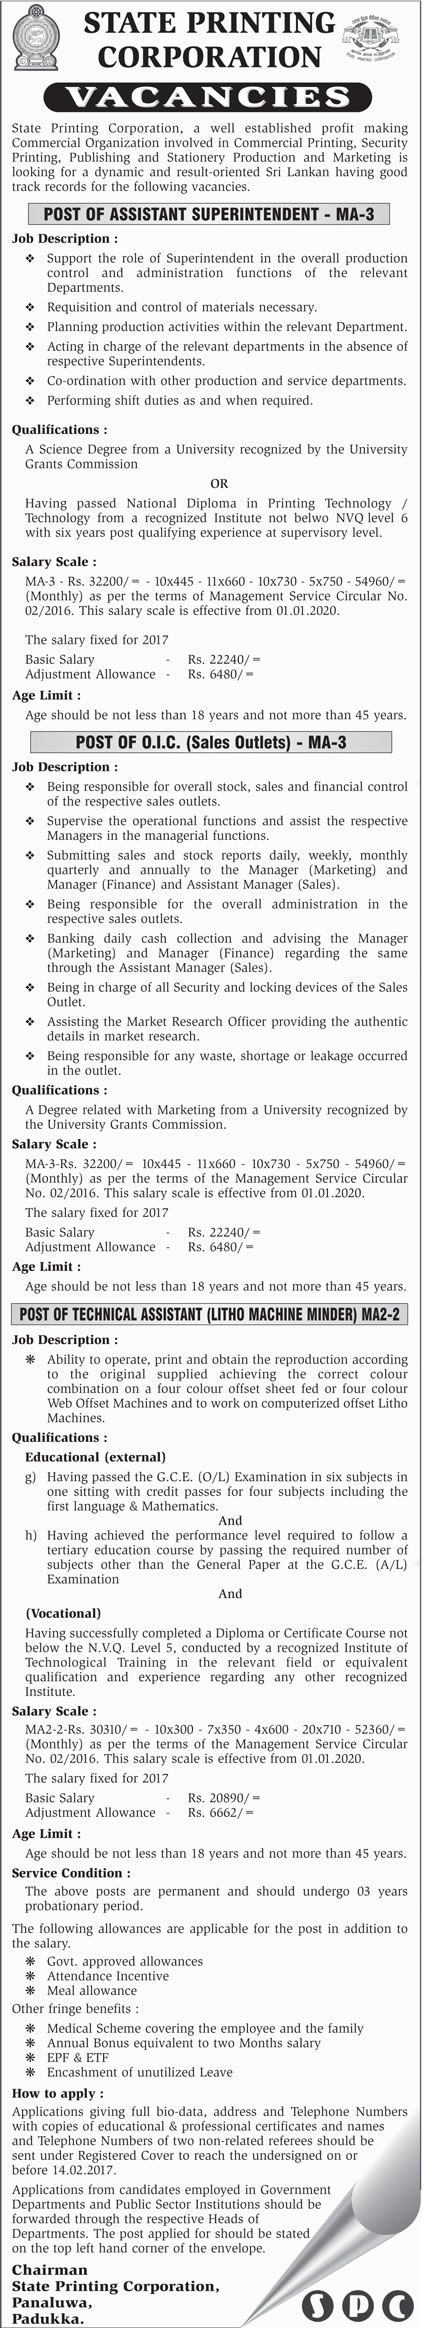 Vacancies at Ministry of Plantation Industries | Career First ...